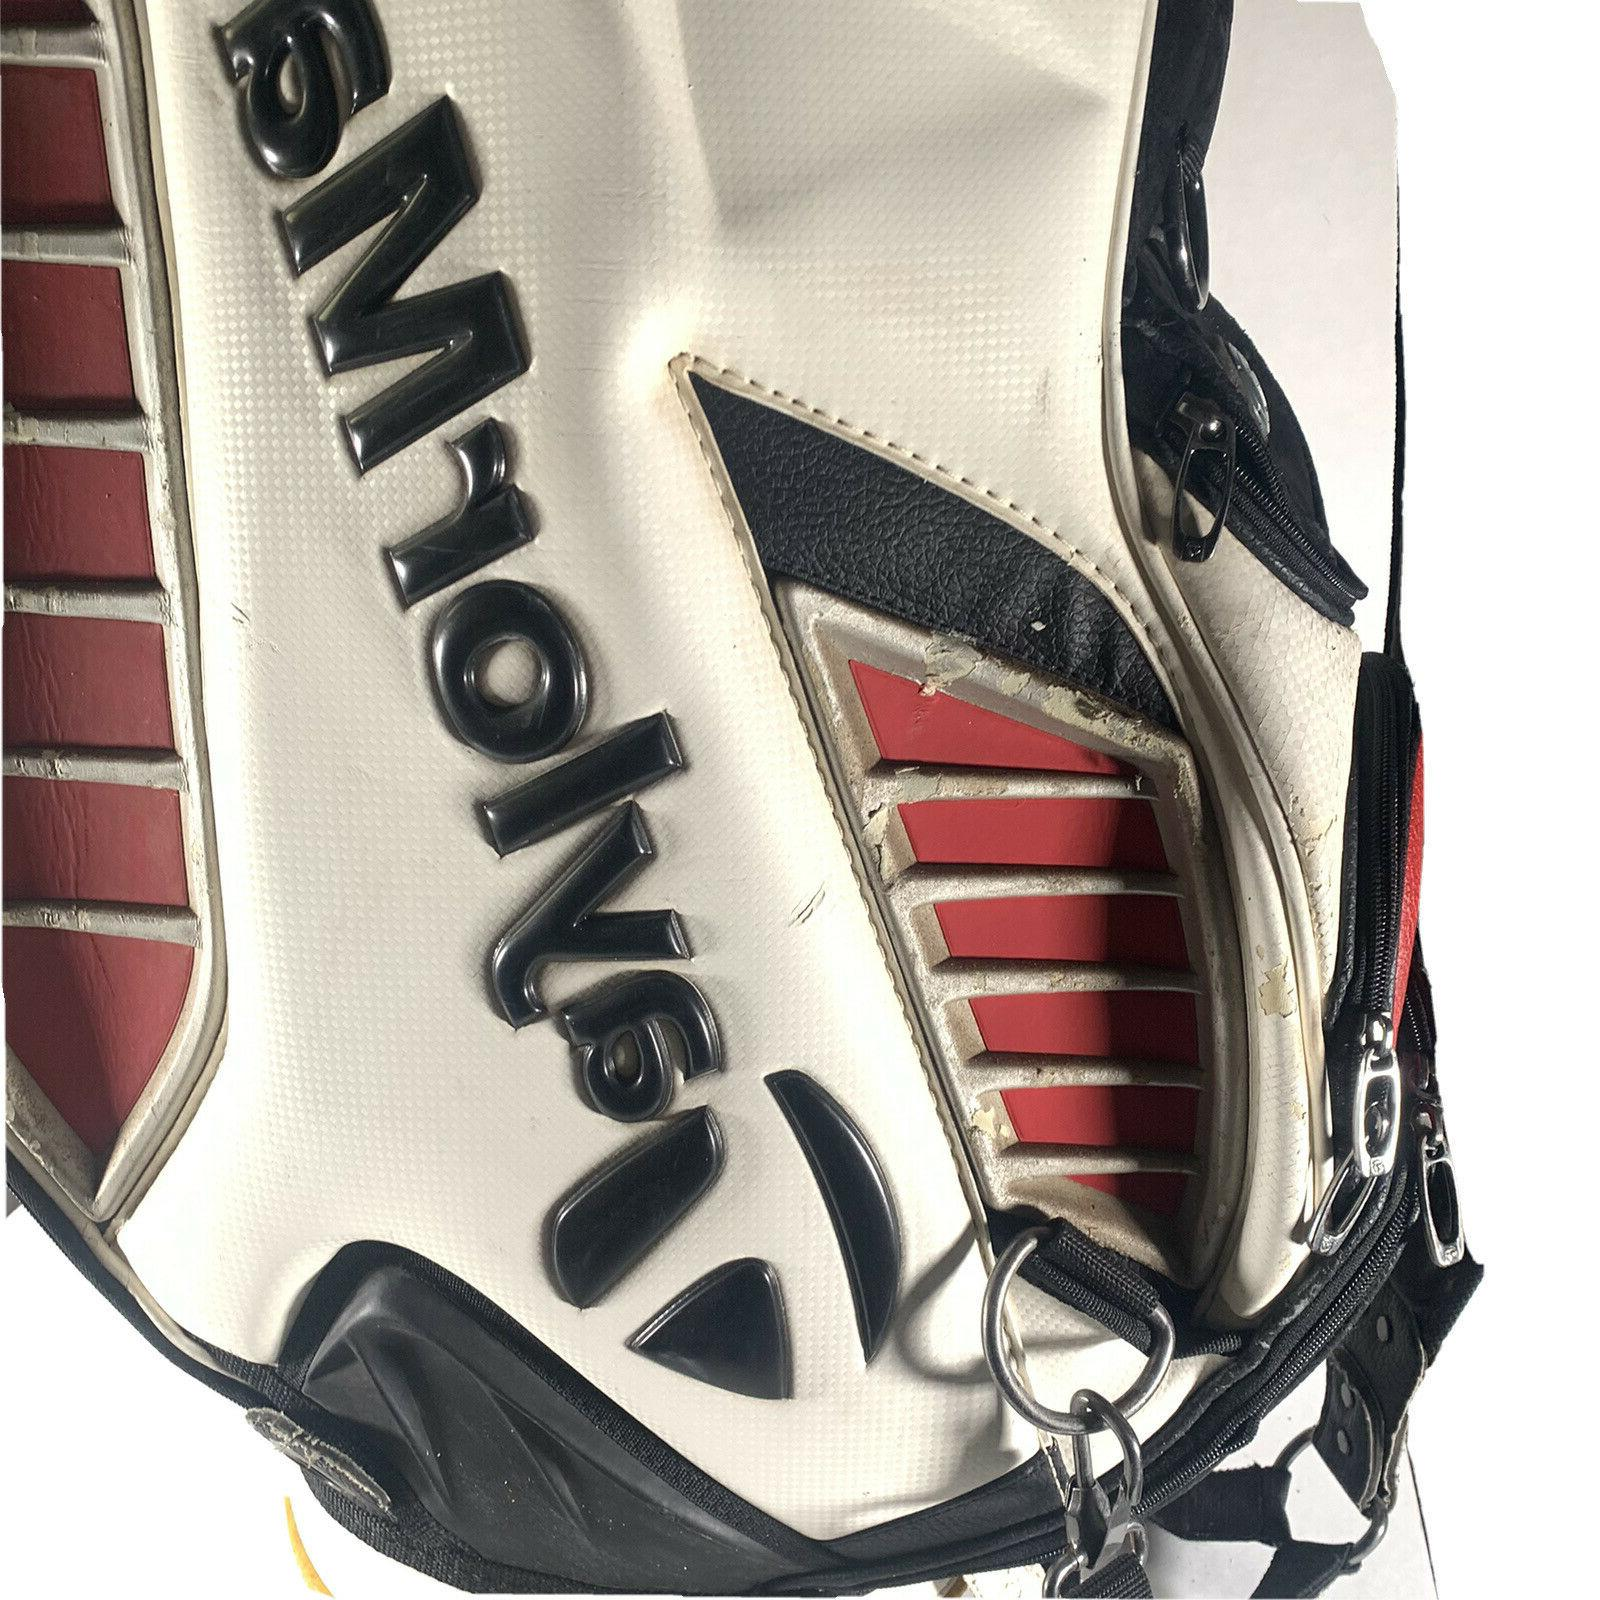 Taylormade Bag-golf clubs golf lot-10, Burner